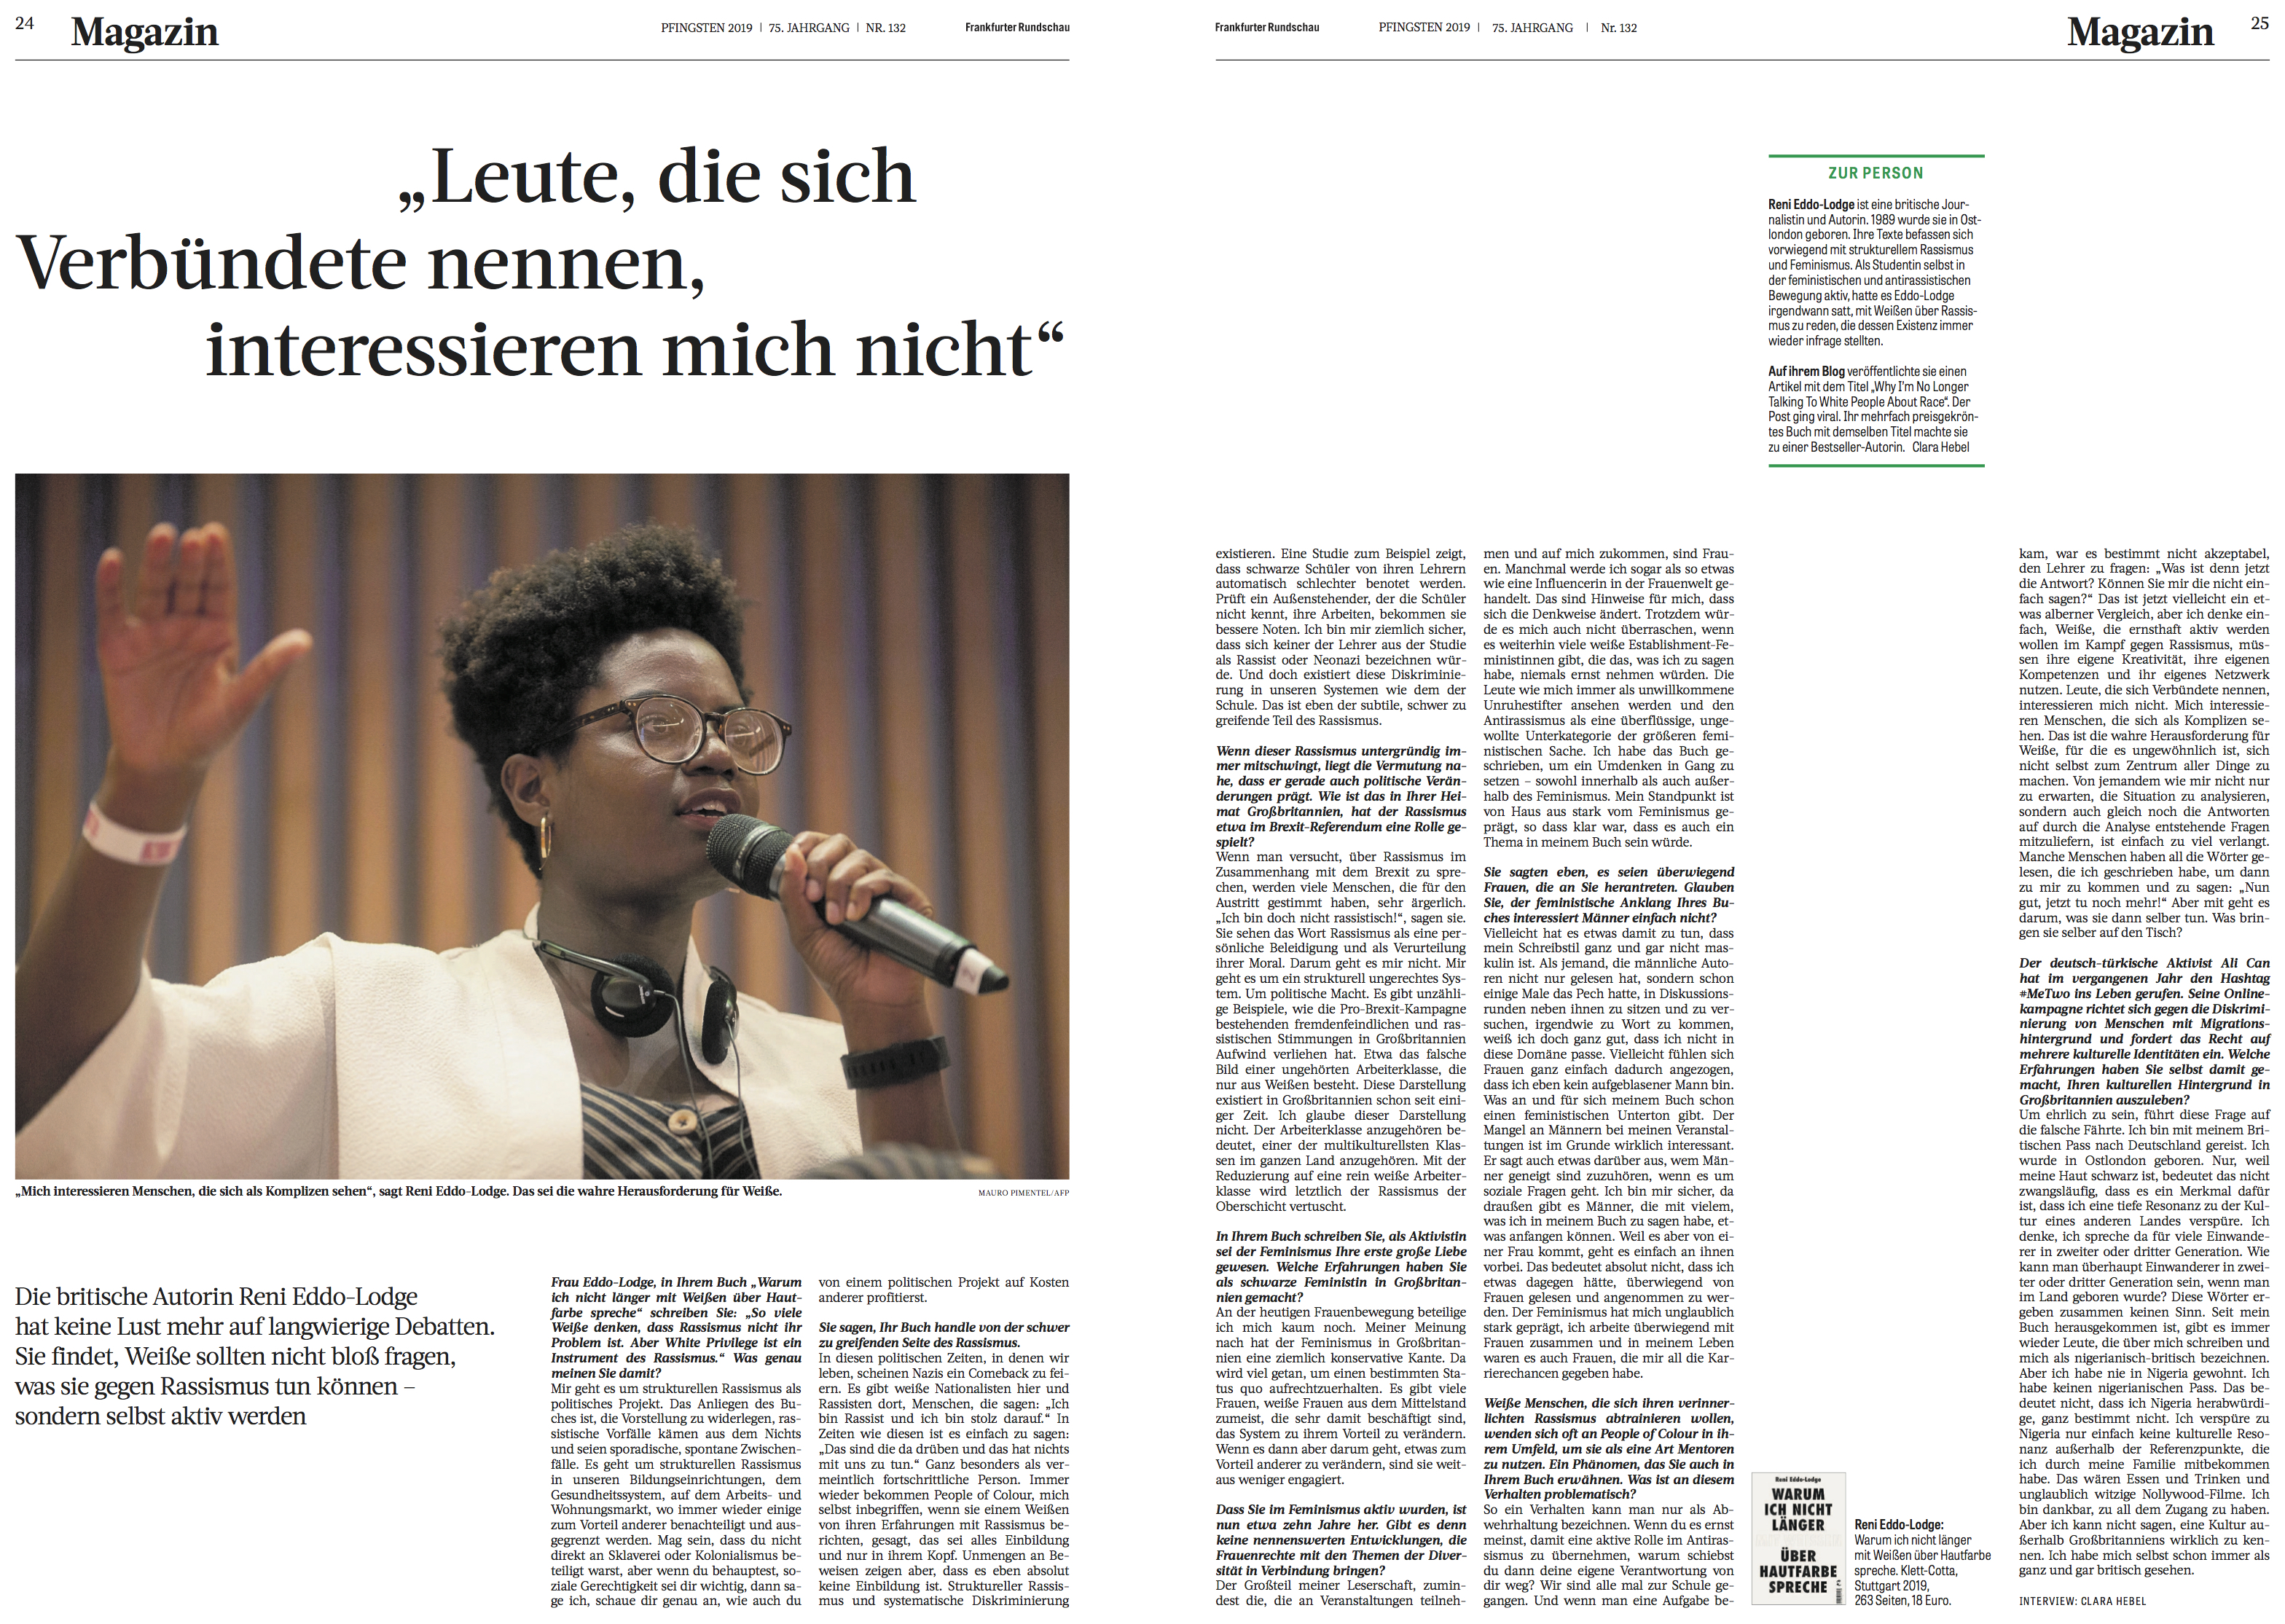 Interview Reni Eddo Lodge by Clara Hebel for Frankfurter Rundschau